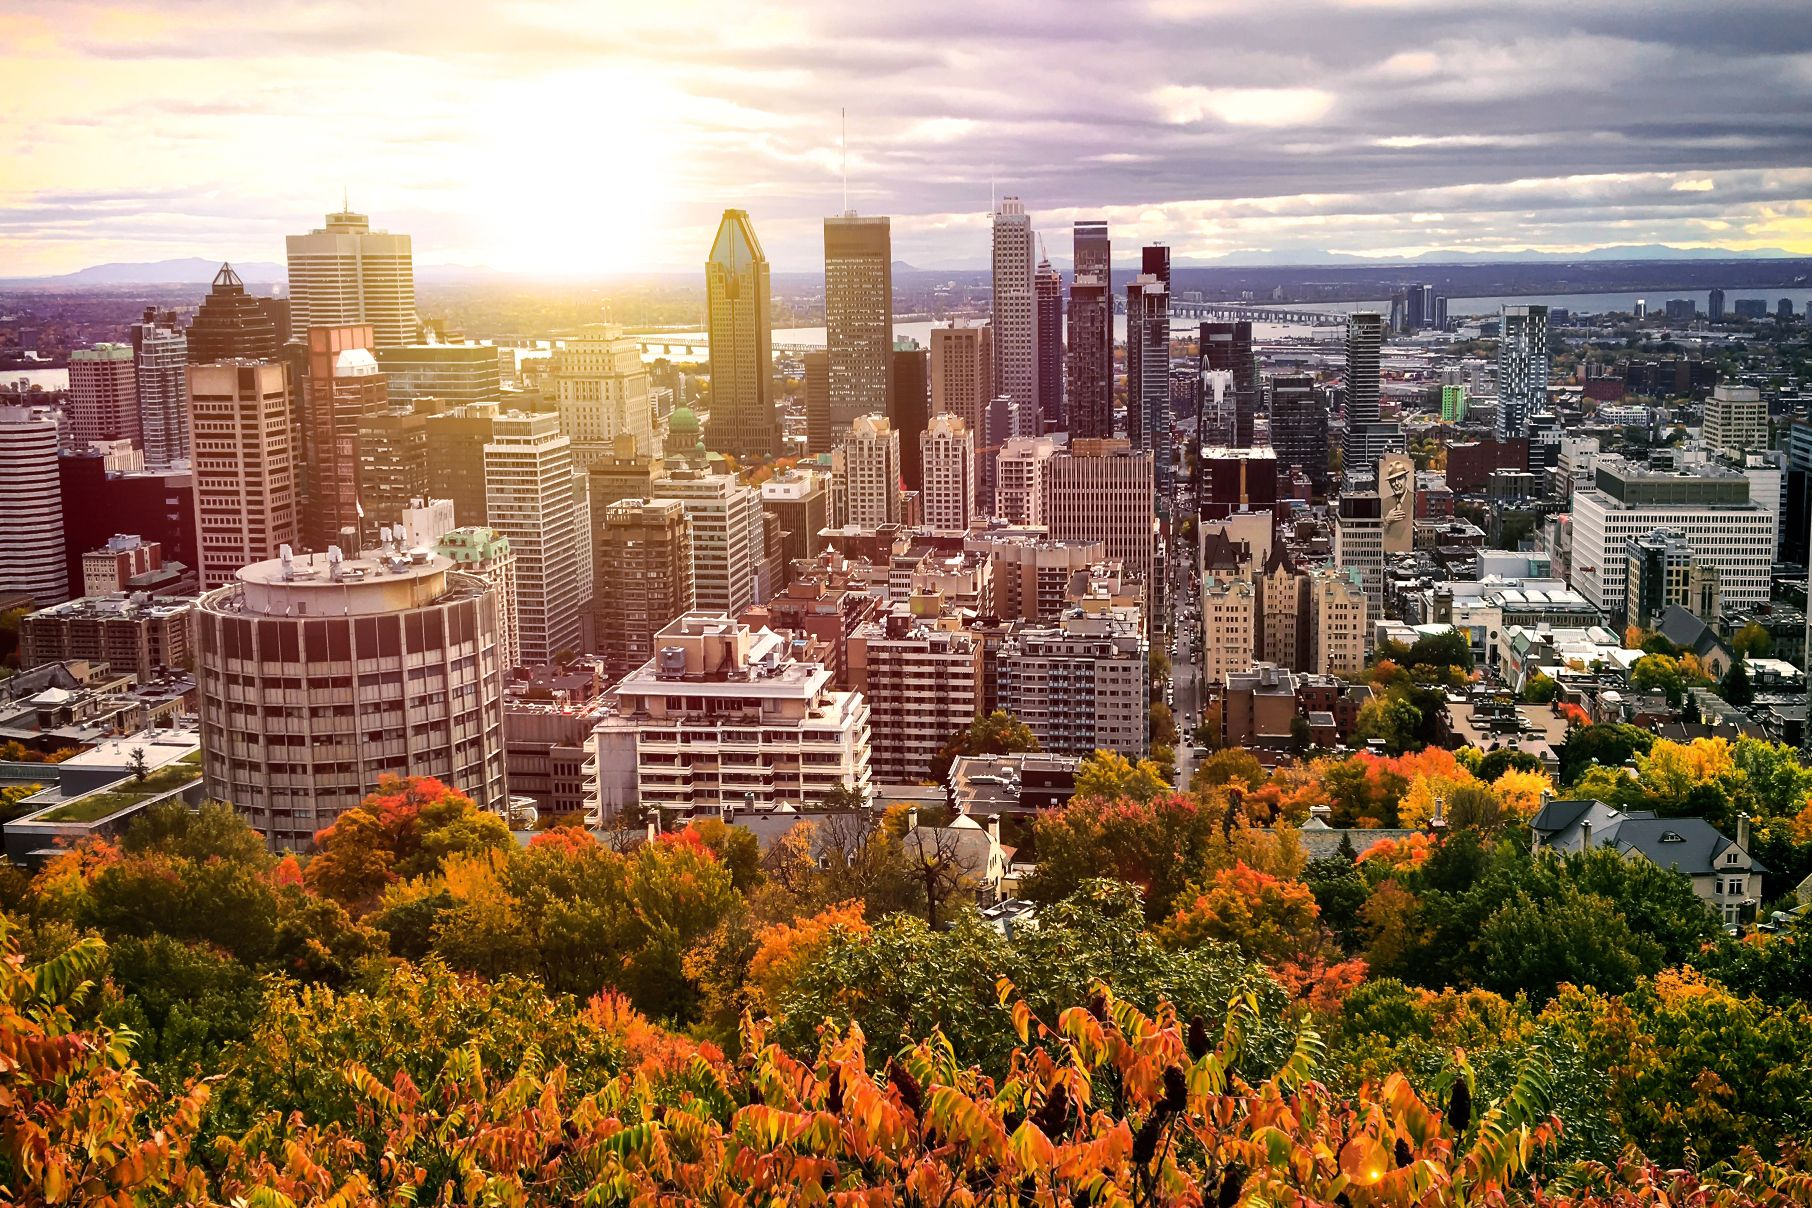 meilleurs courtiers immobiliers outremont montreal